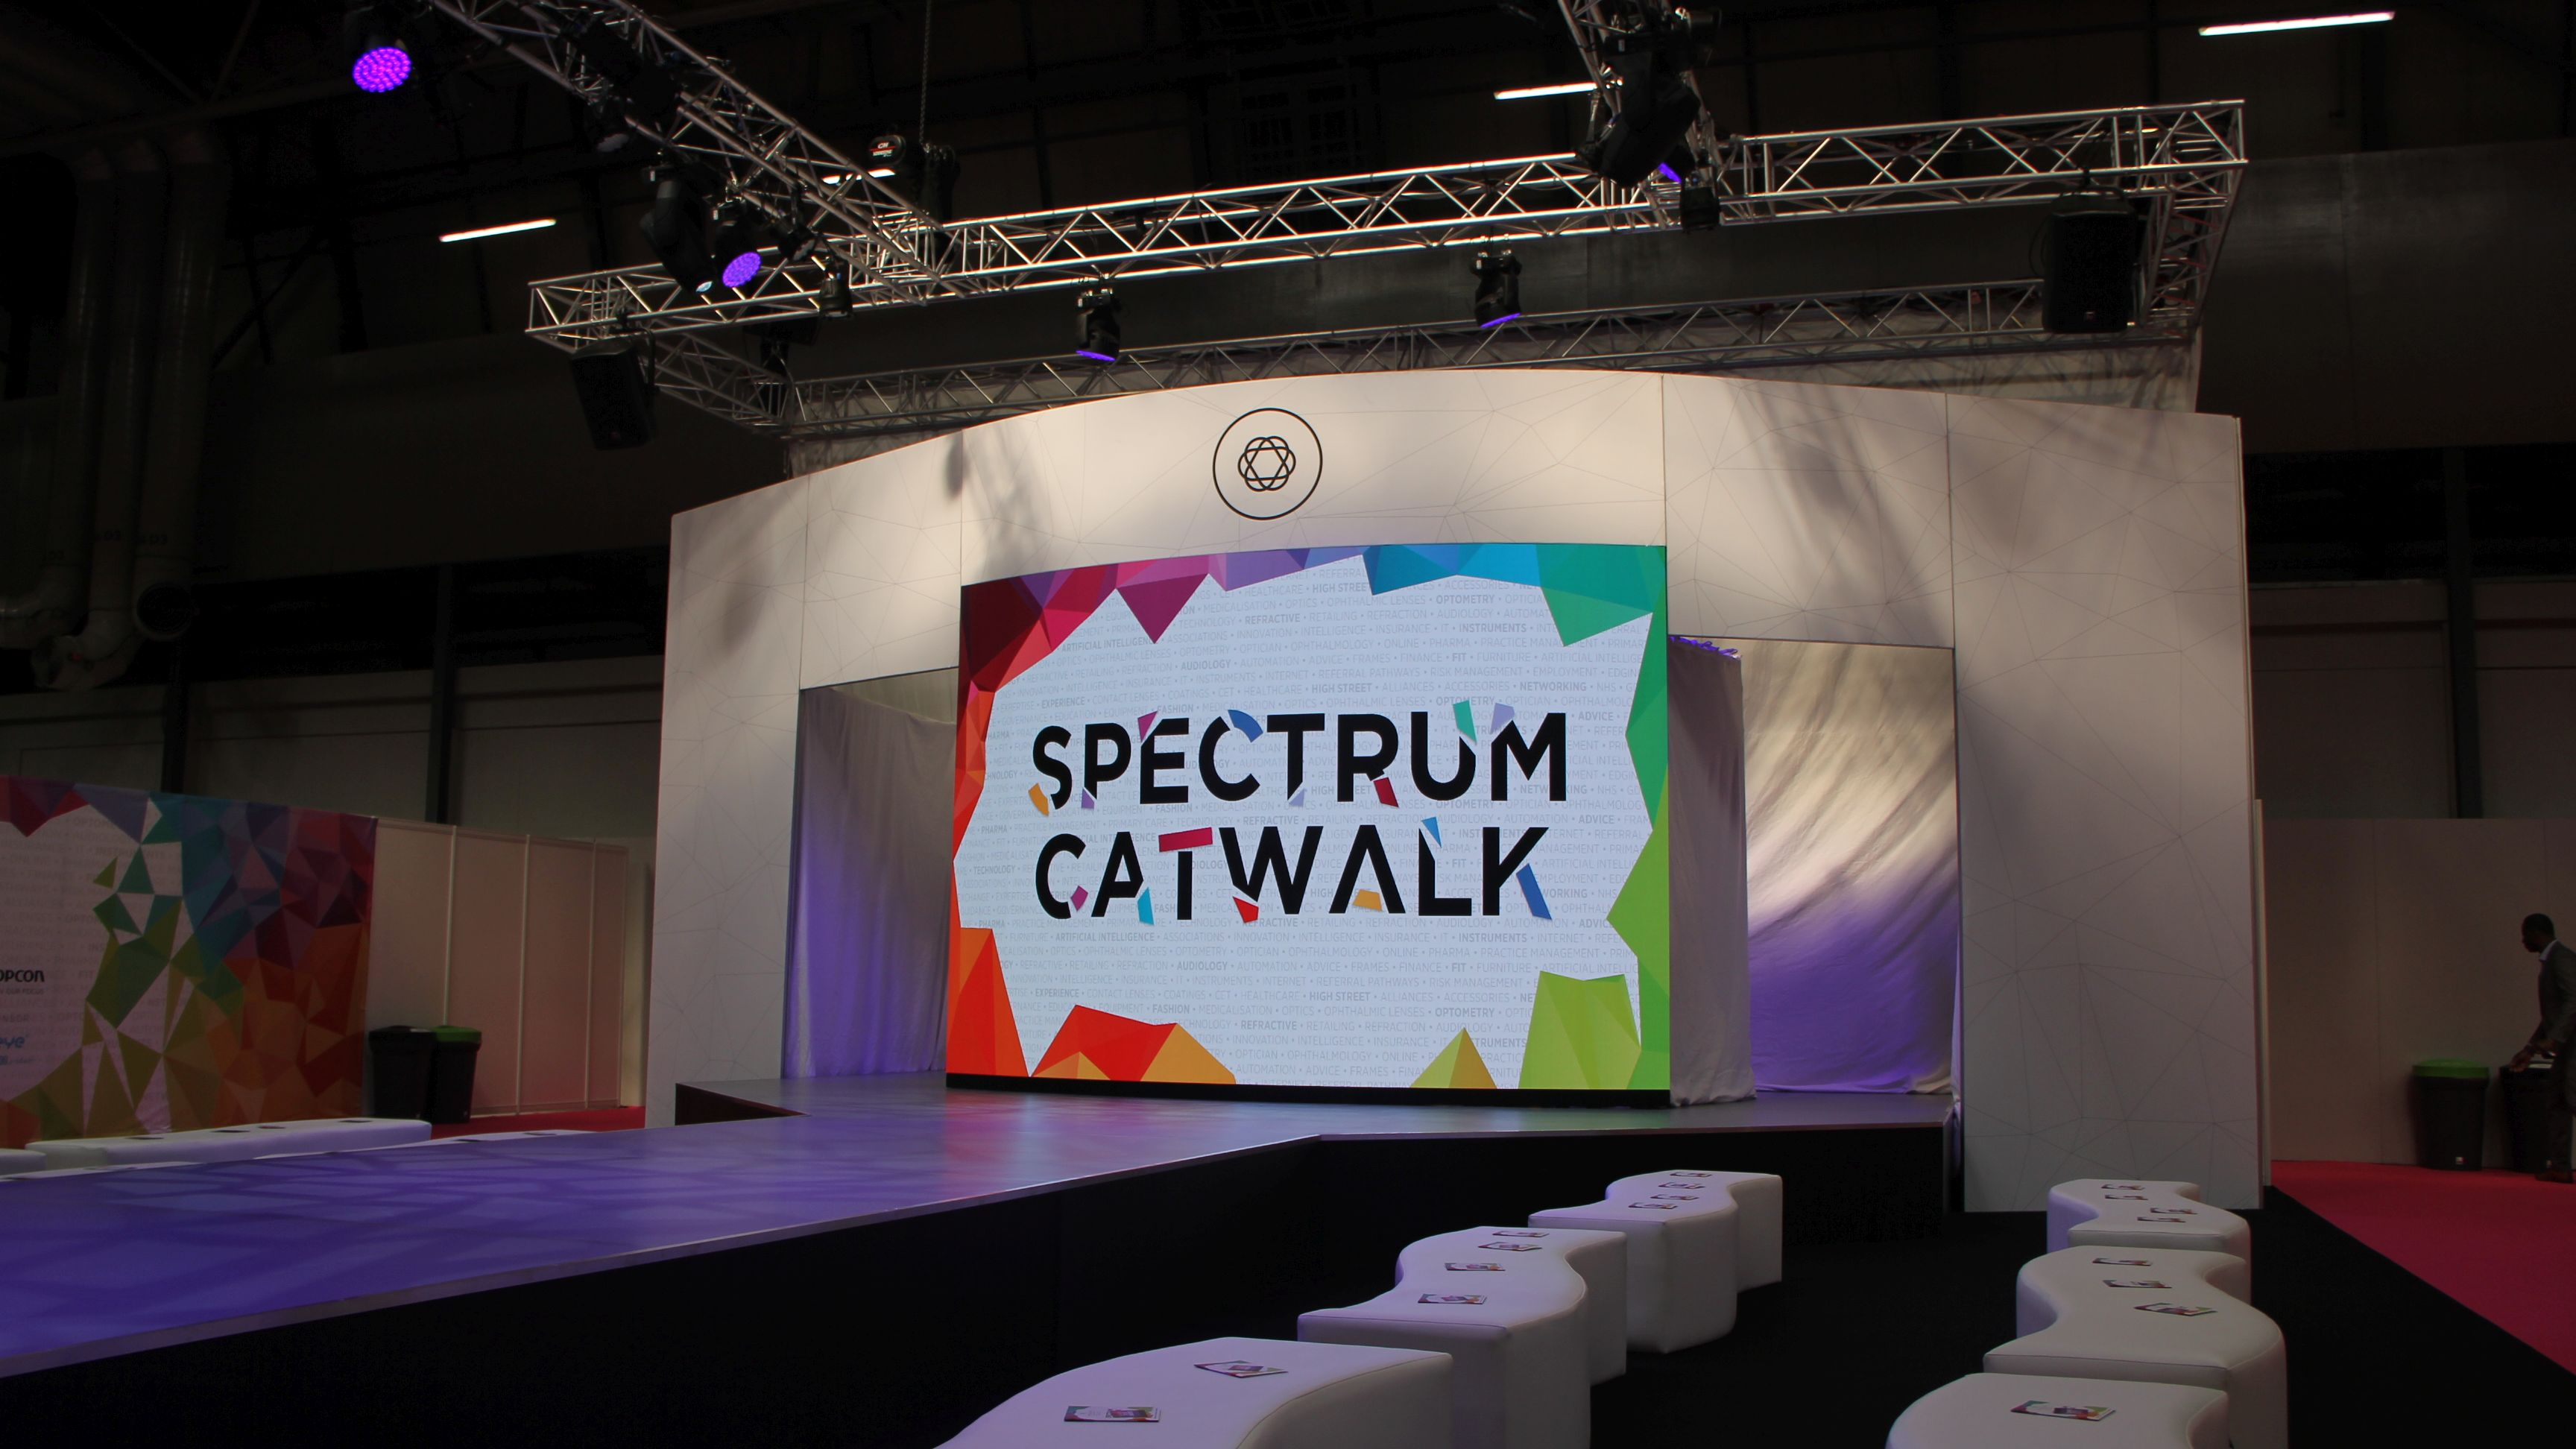 OneBigStar Optrafair Spectrum Catwalk 2019 Trade Show Features & Catwalk